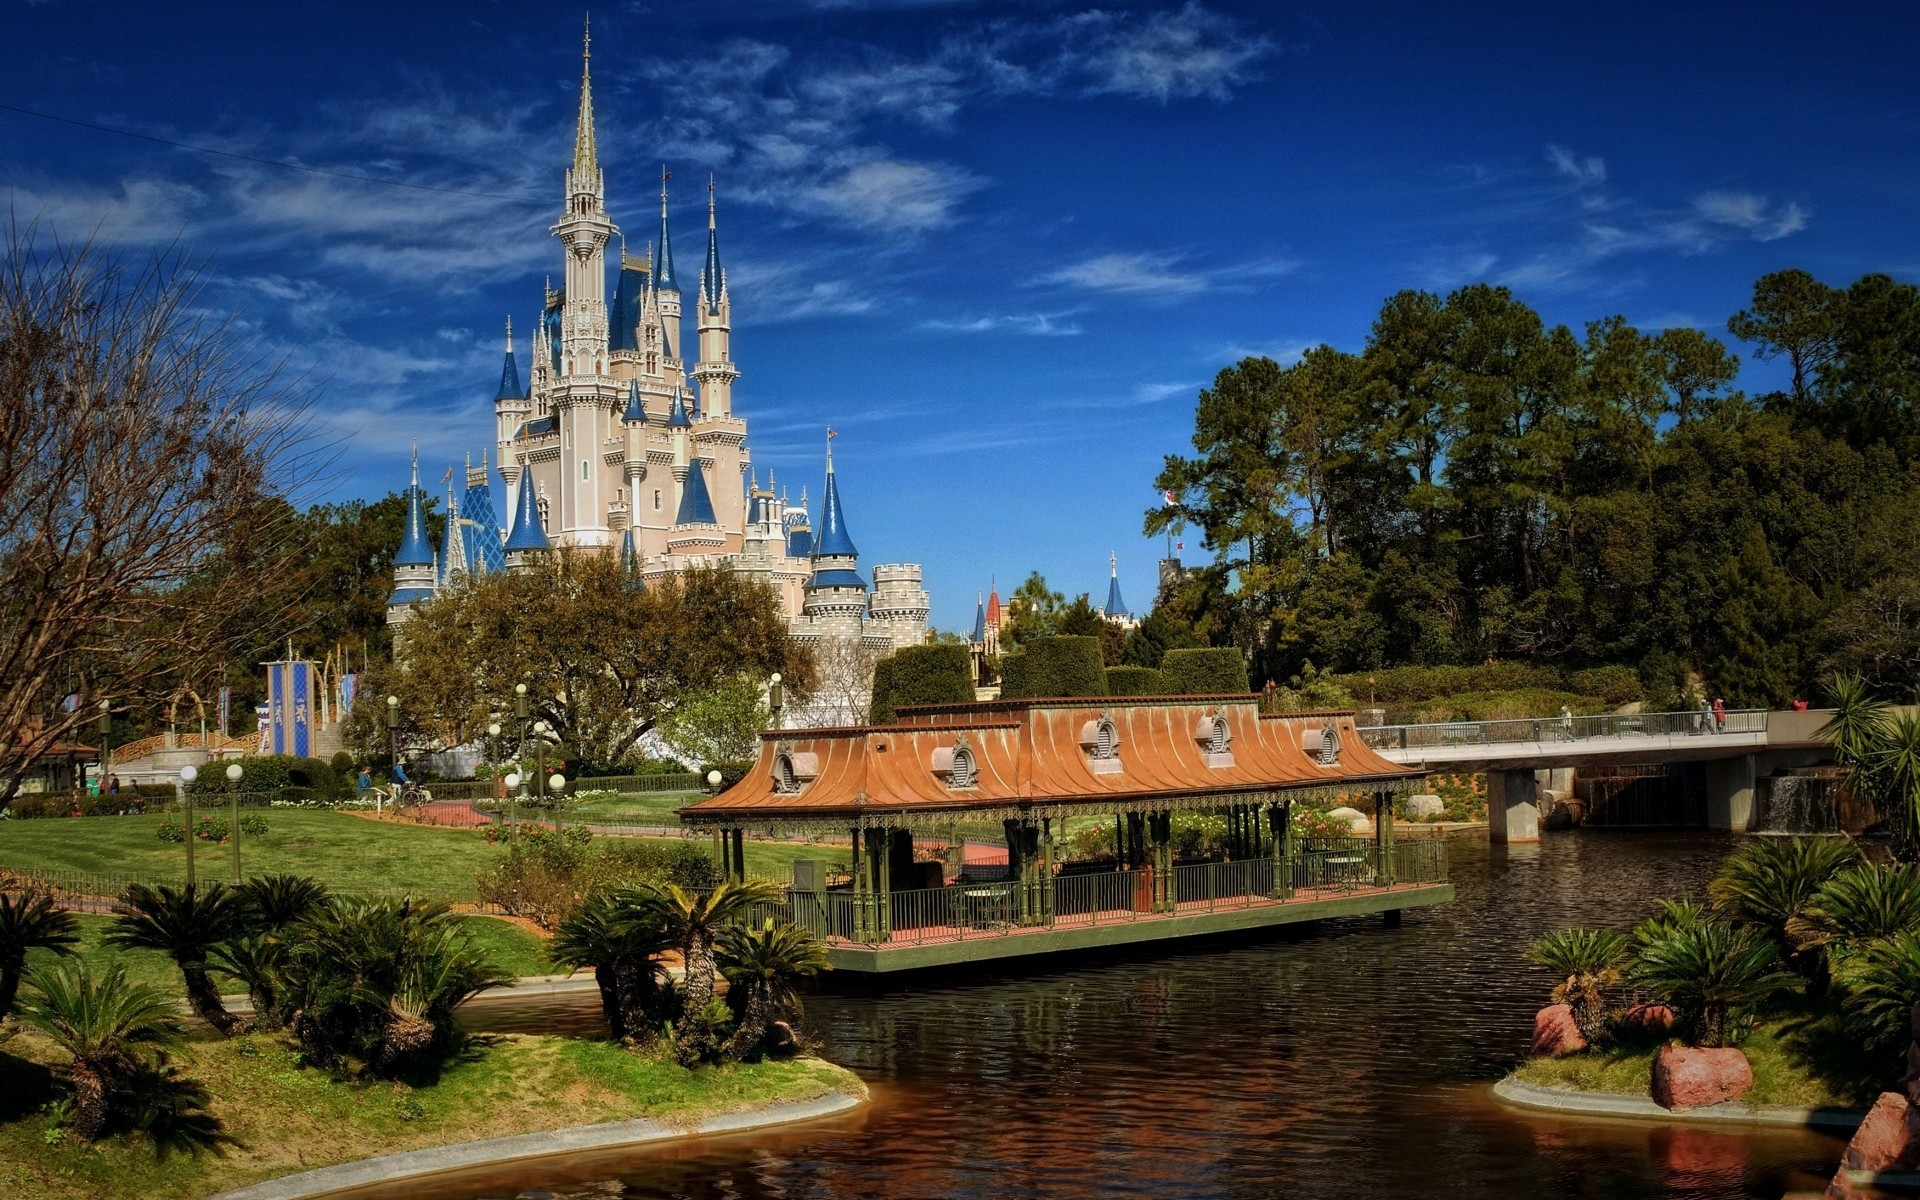 Disney World Wallpaper wallpaper Disney World Wallpaper hd wallpaper 1920x1200